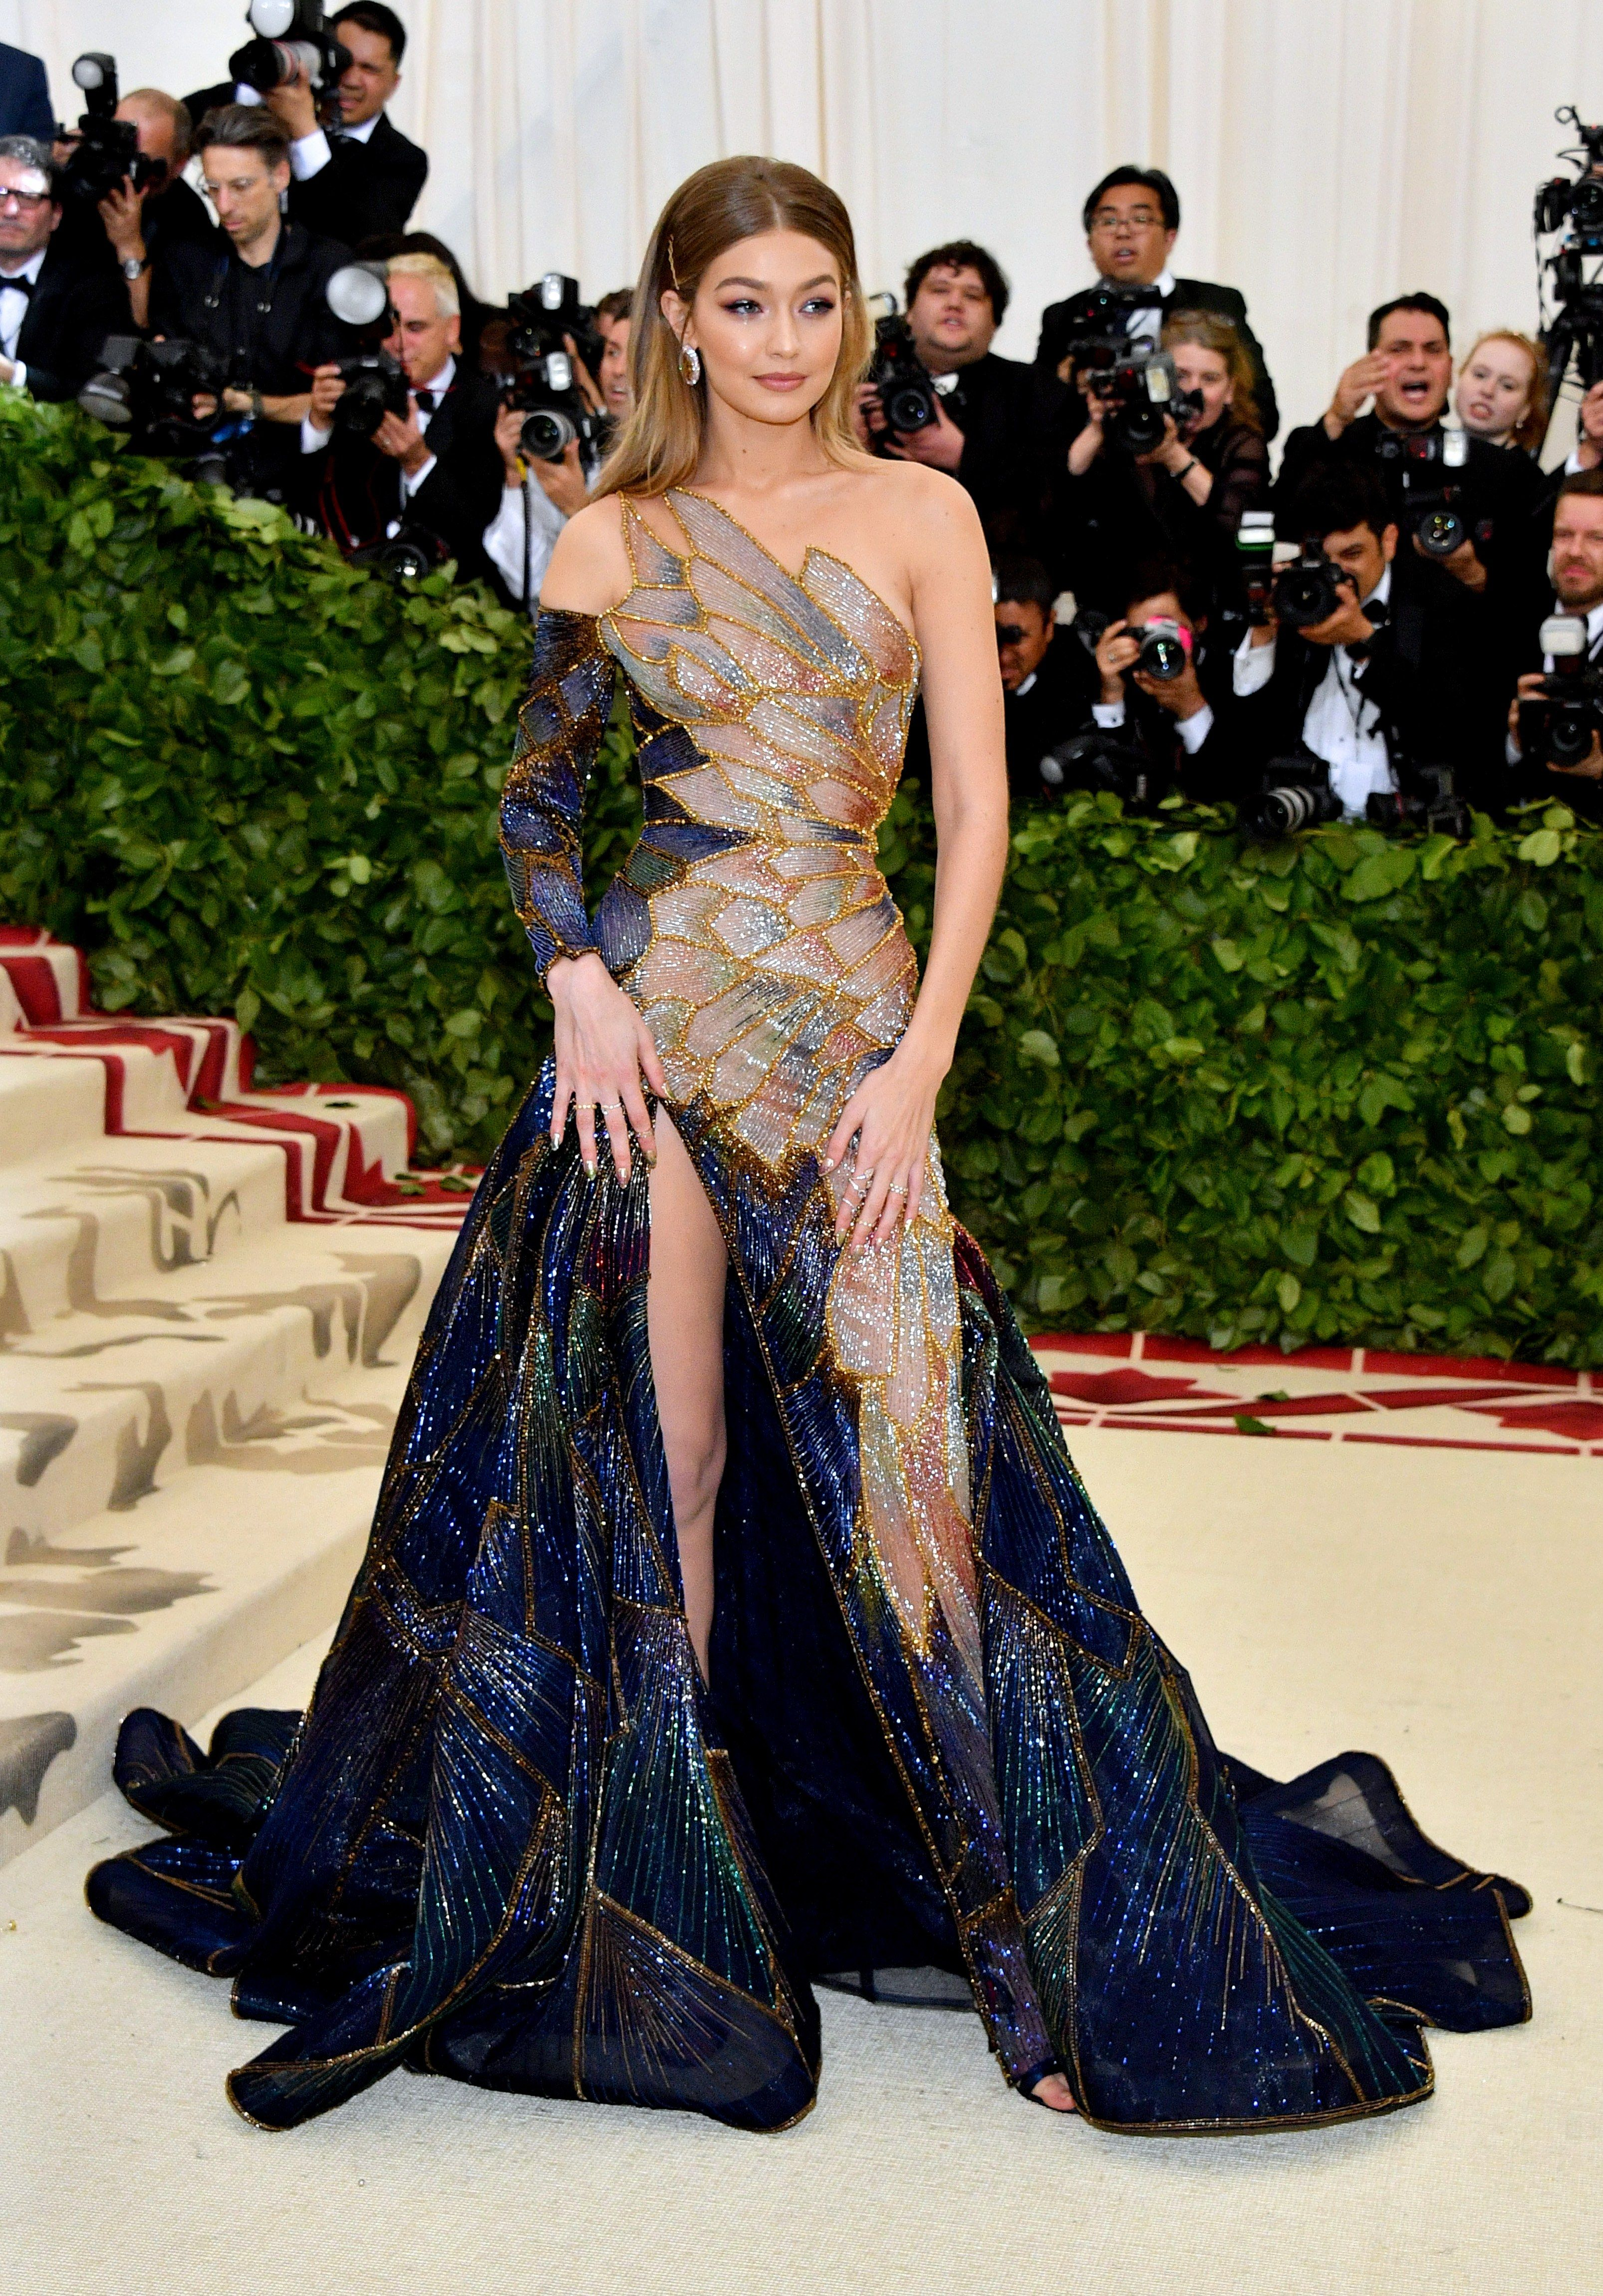 fa586d7c9 Met Gala 2018 Red Carpet  All the Celebrity Dresses and Fashion ...